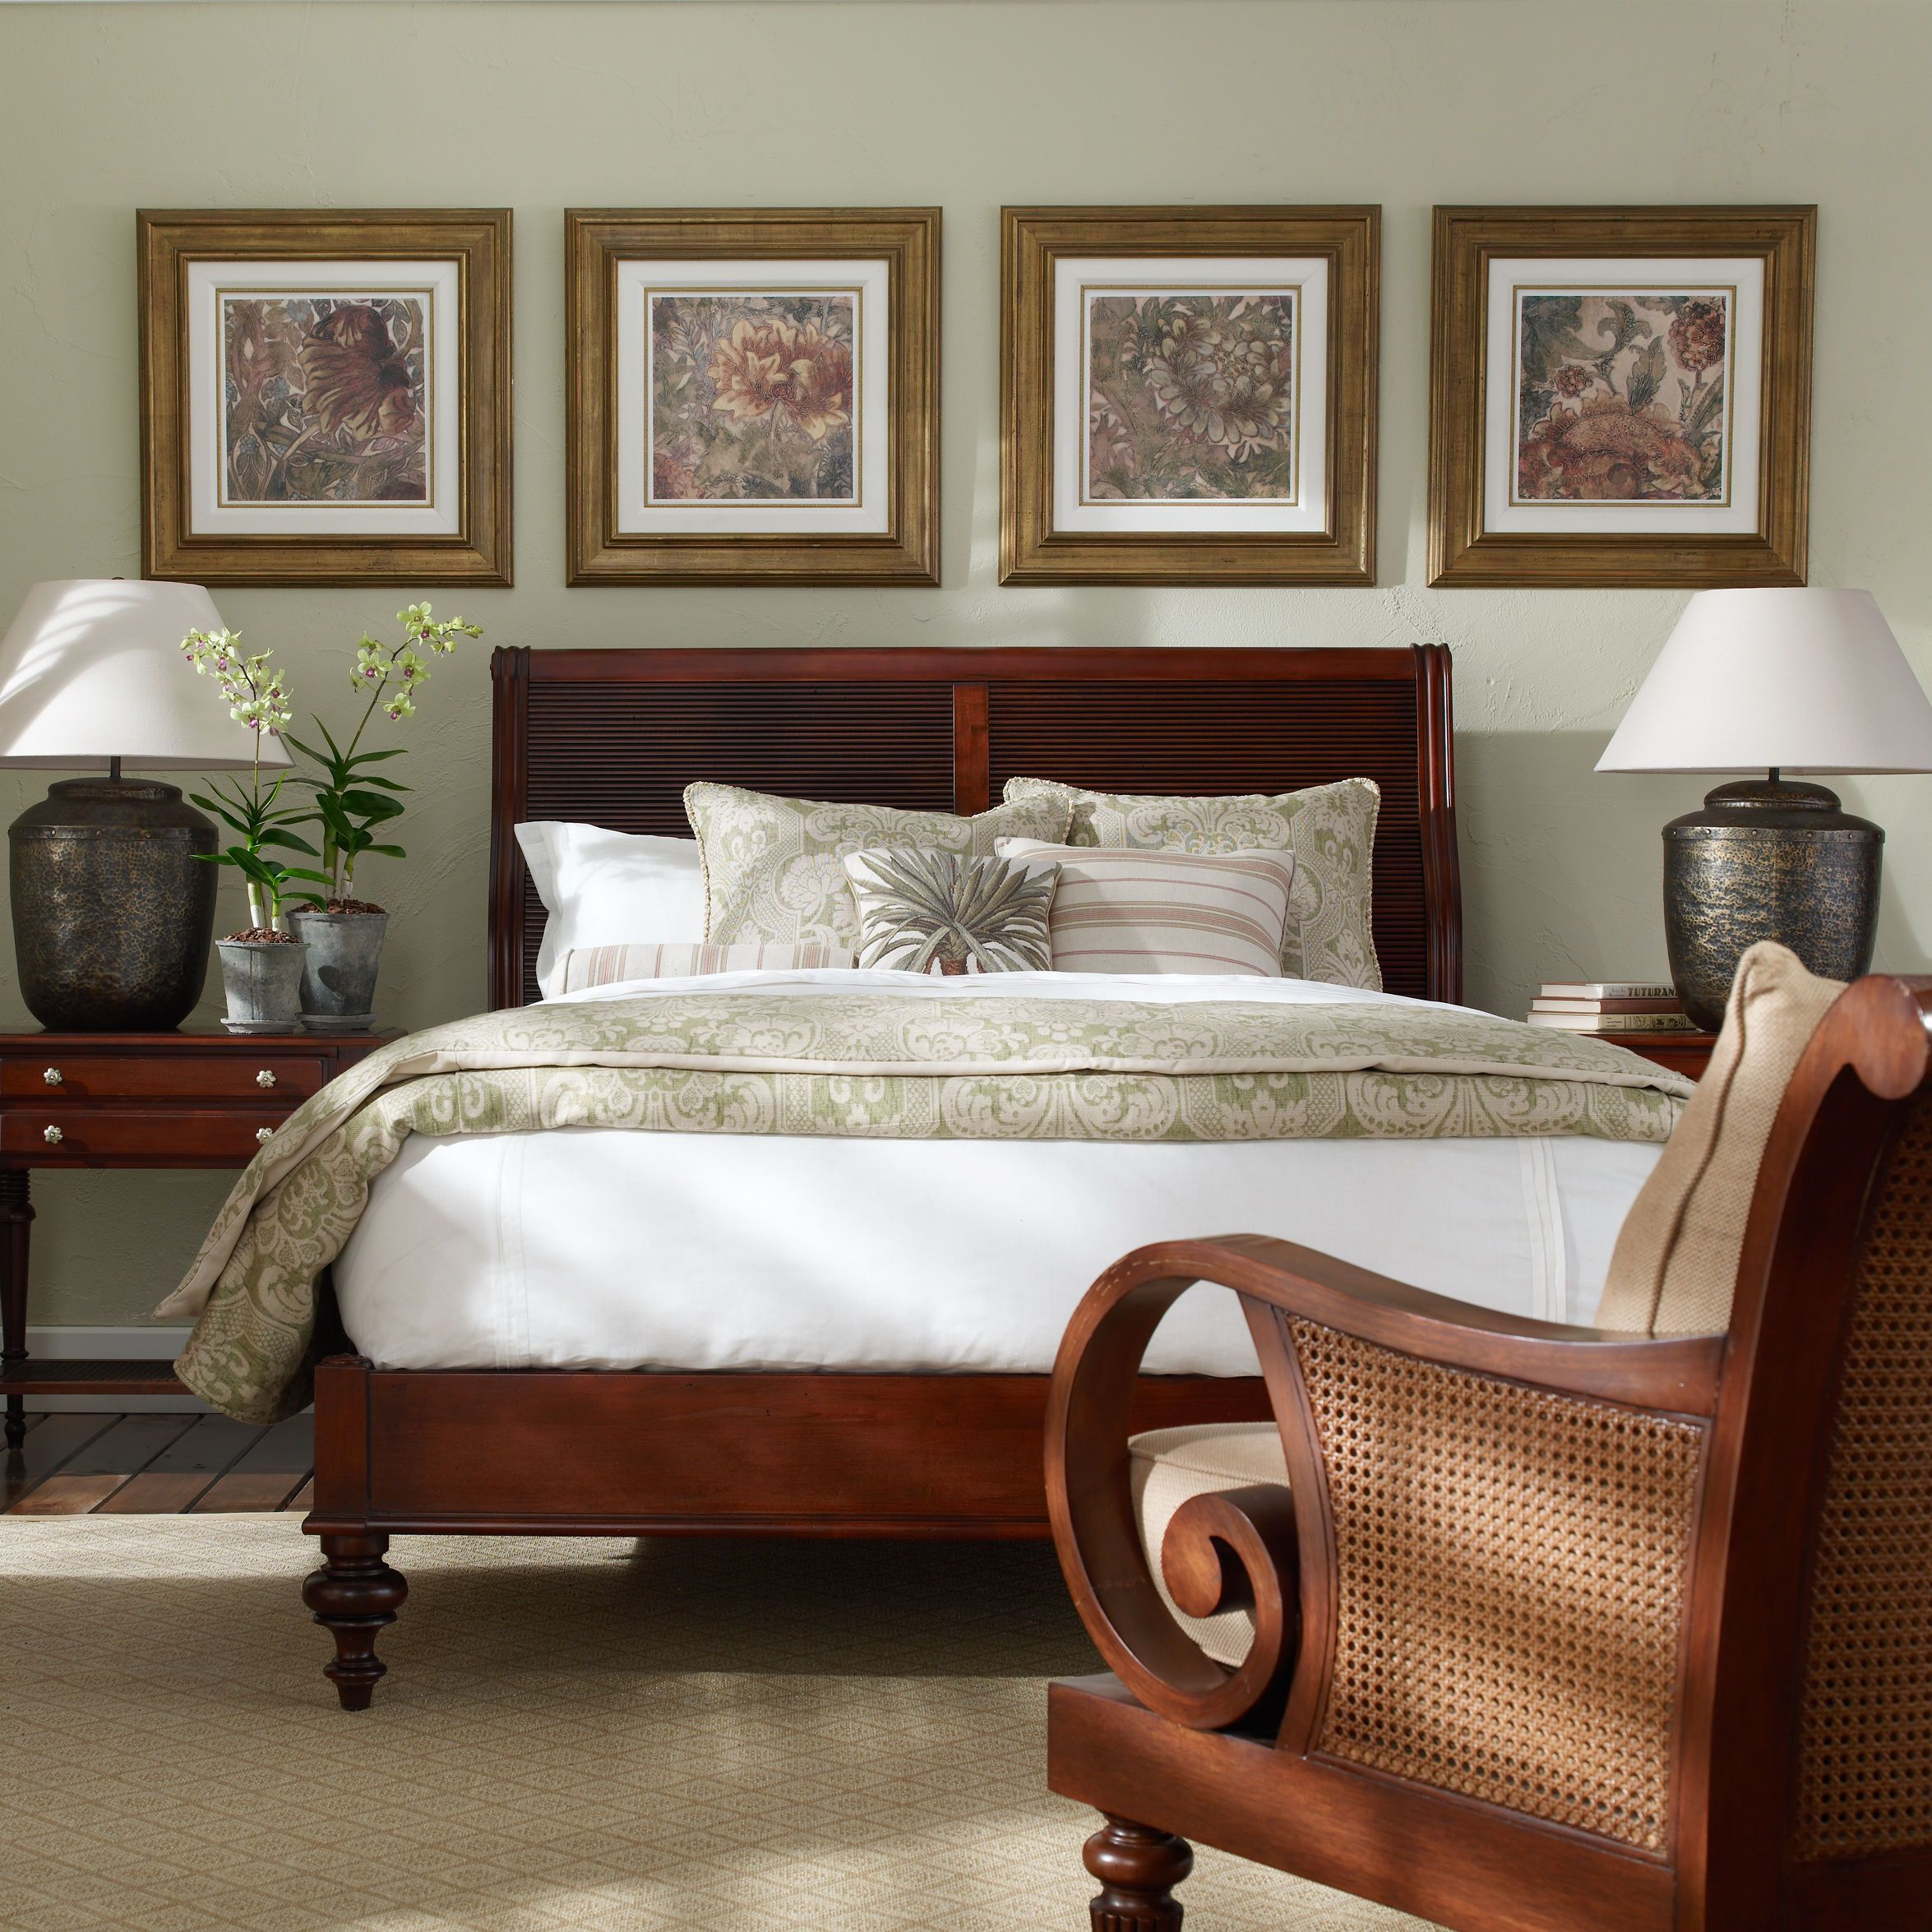 Cayman Bed - Ethan Allen Home Sweet In 2019